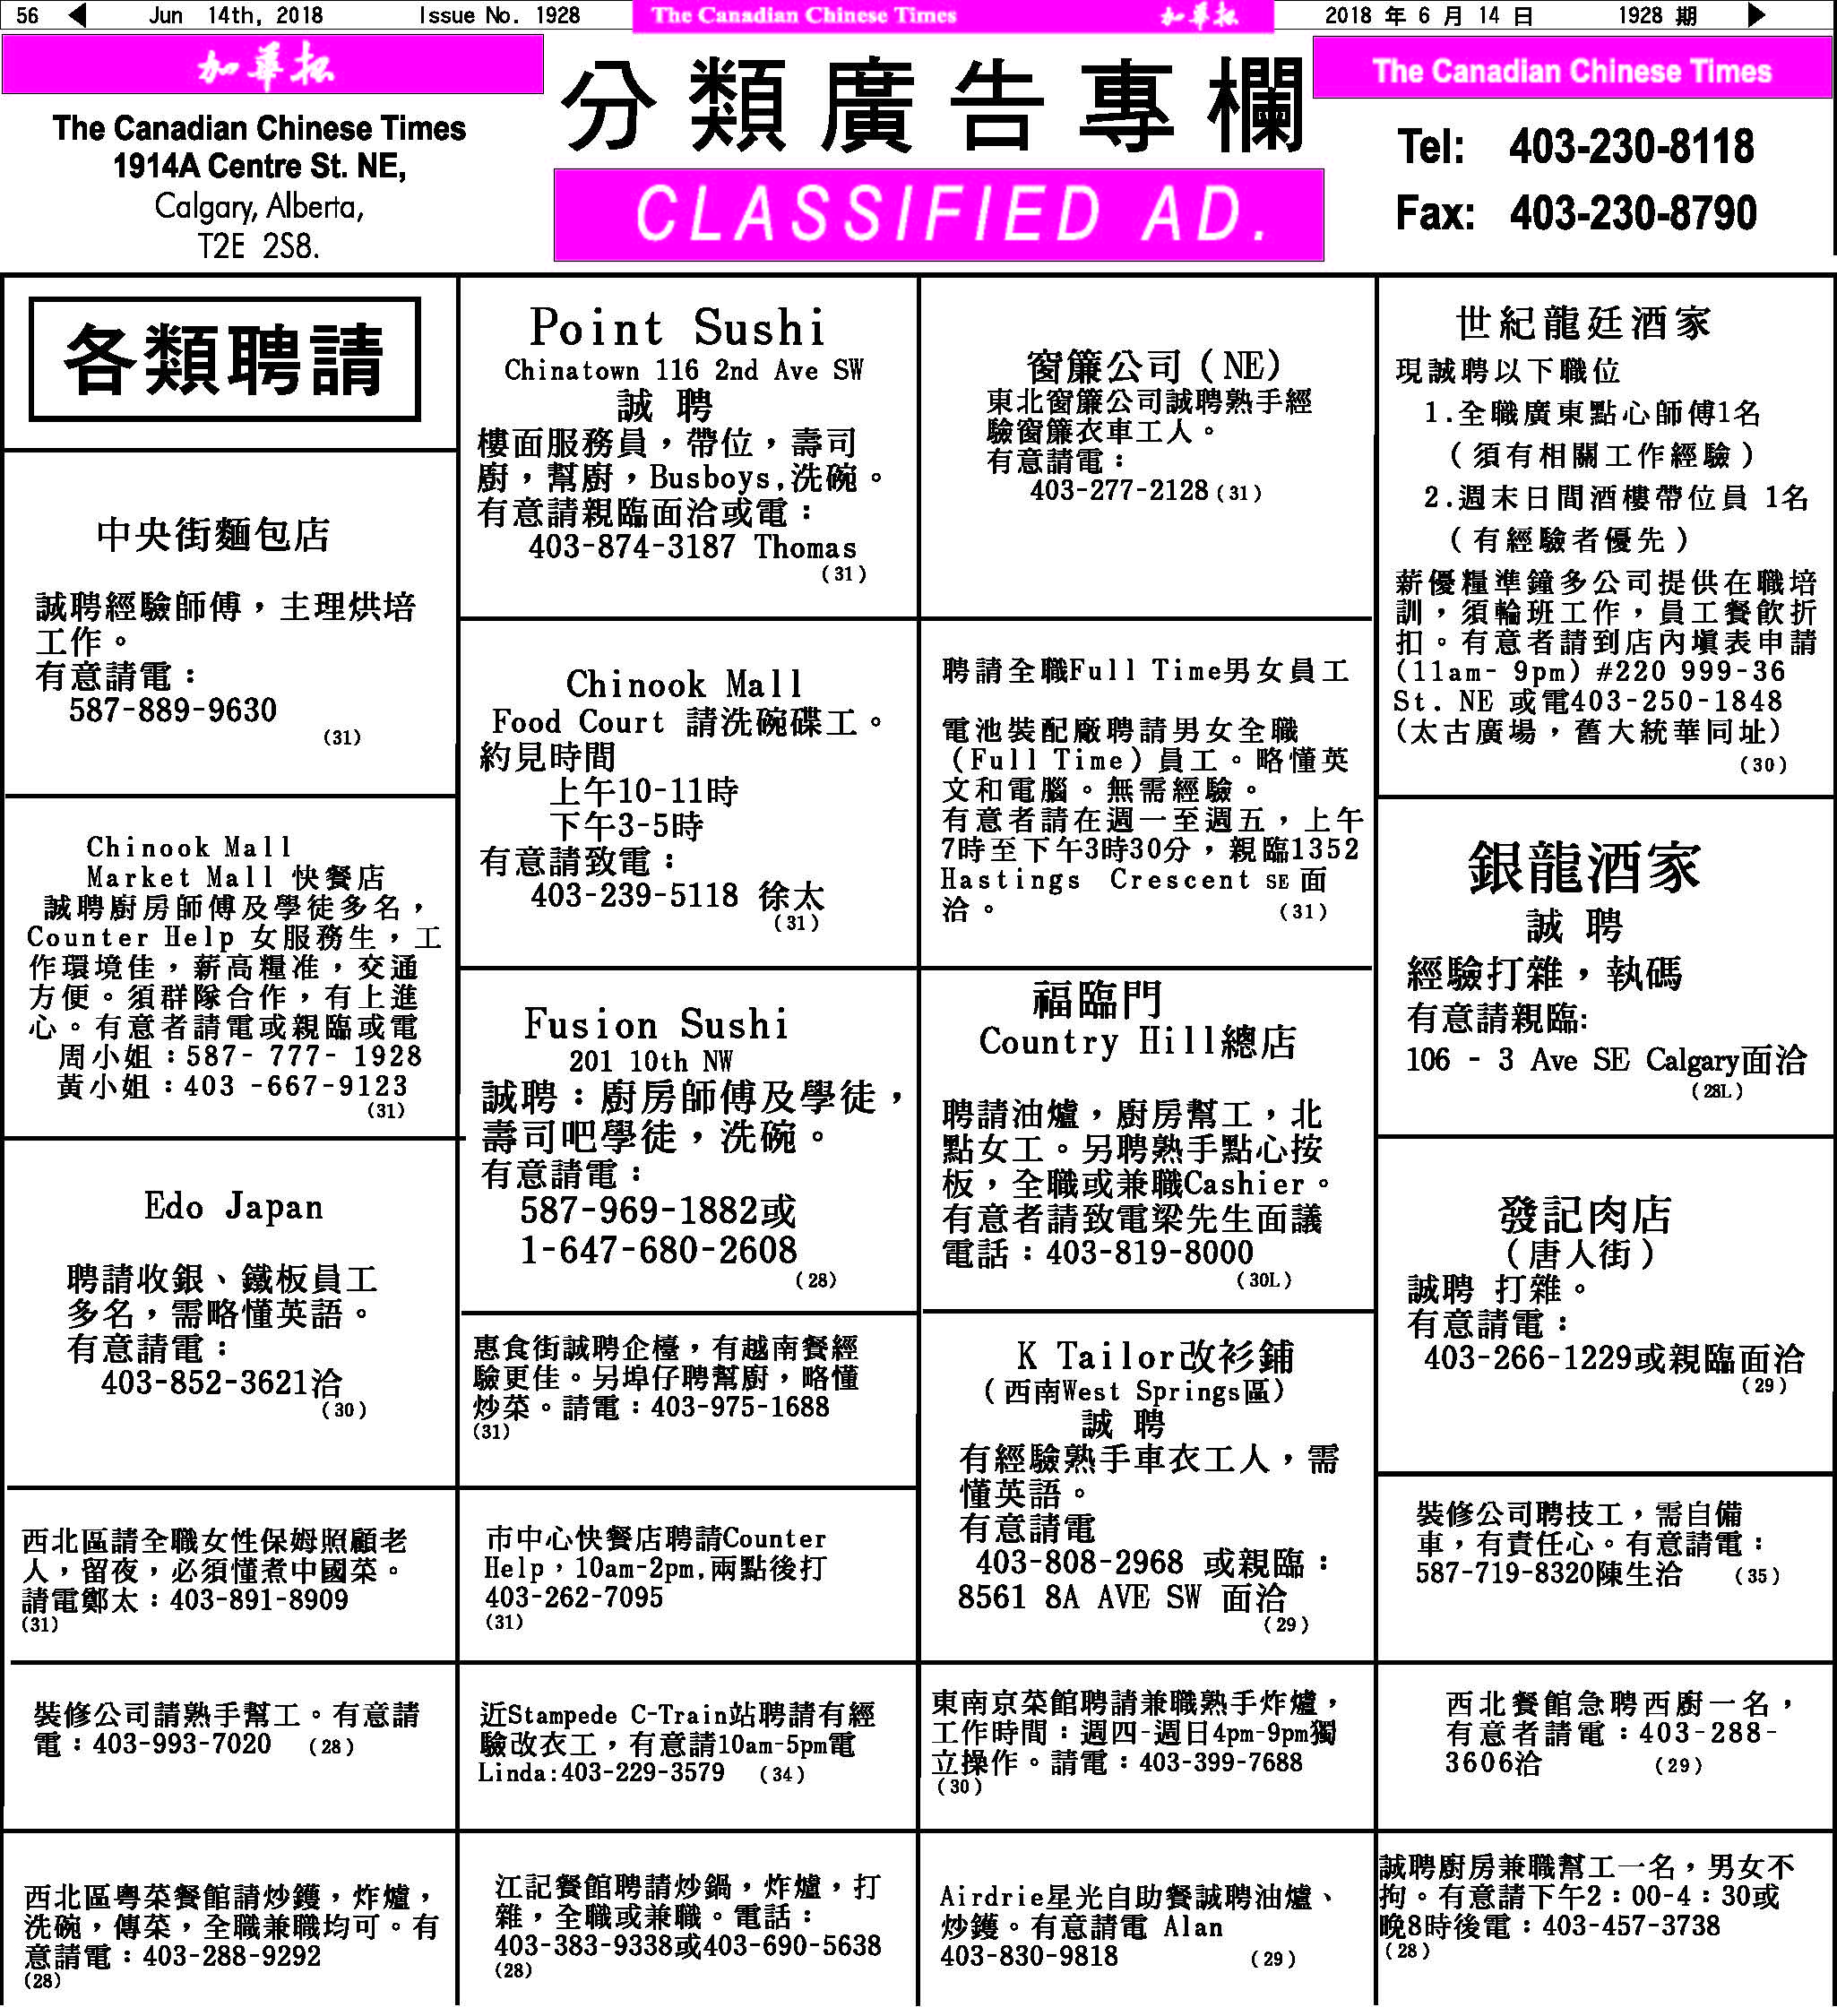 Classifieds Issue #1928 June 14, 2018